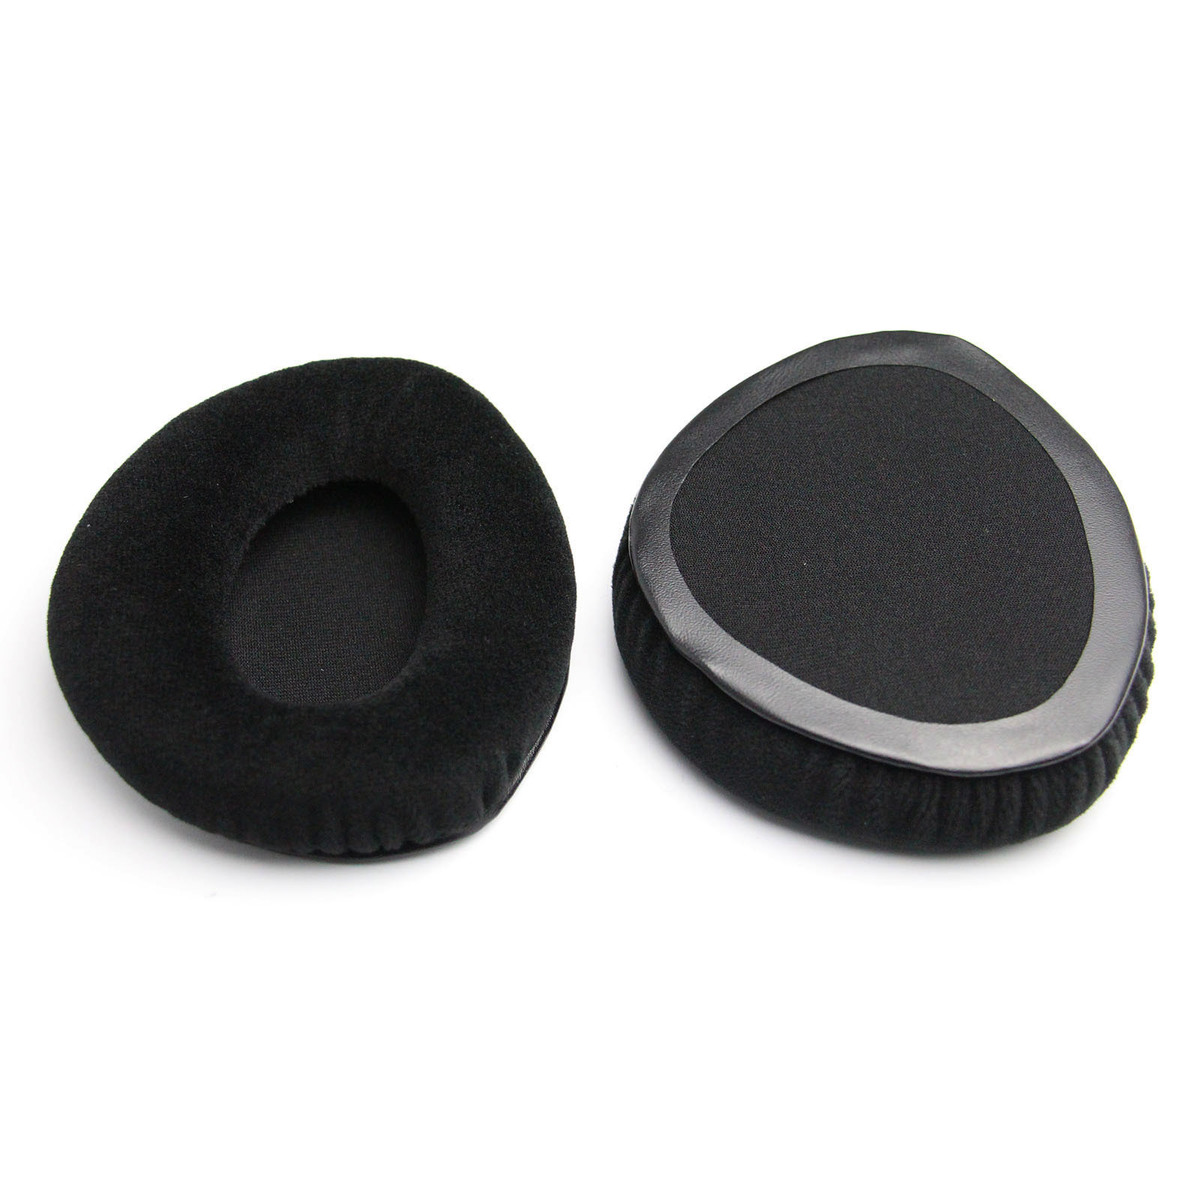 High qualtiy Velour Memory Foam Replacements Earpads for Sennheiser RS160 RS170 RS180 Headset in Earphone Accessories from Consumer Electronics